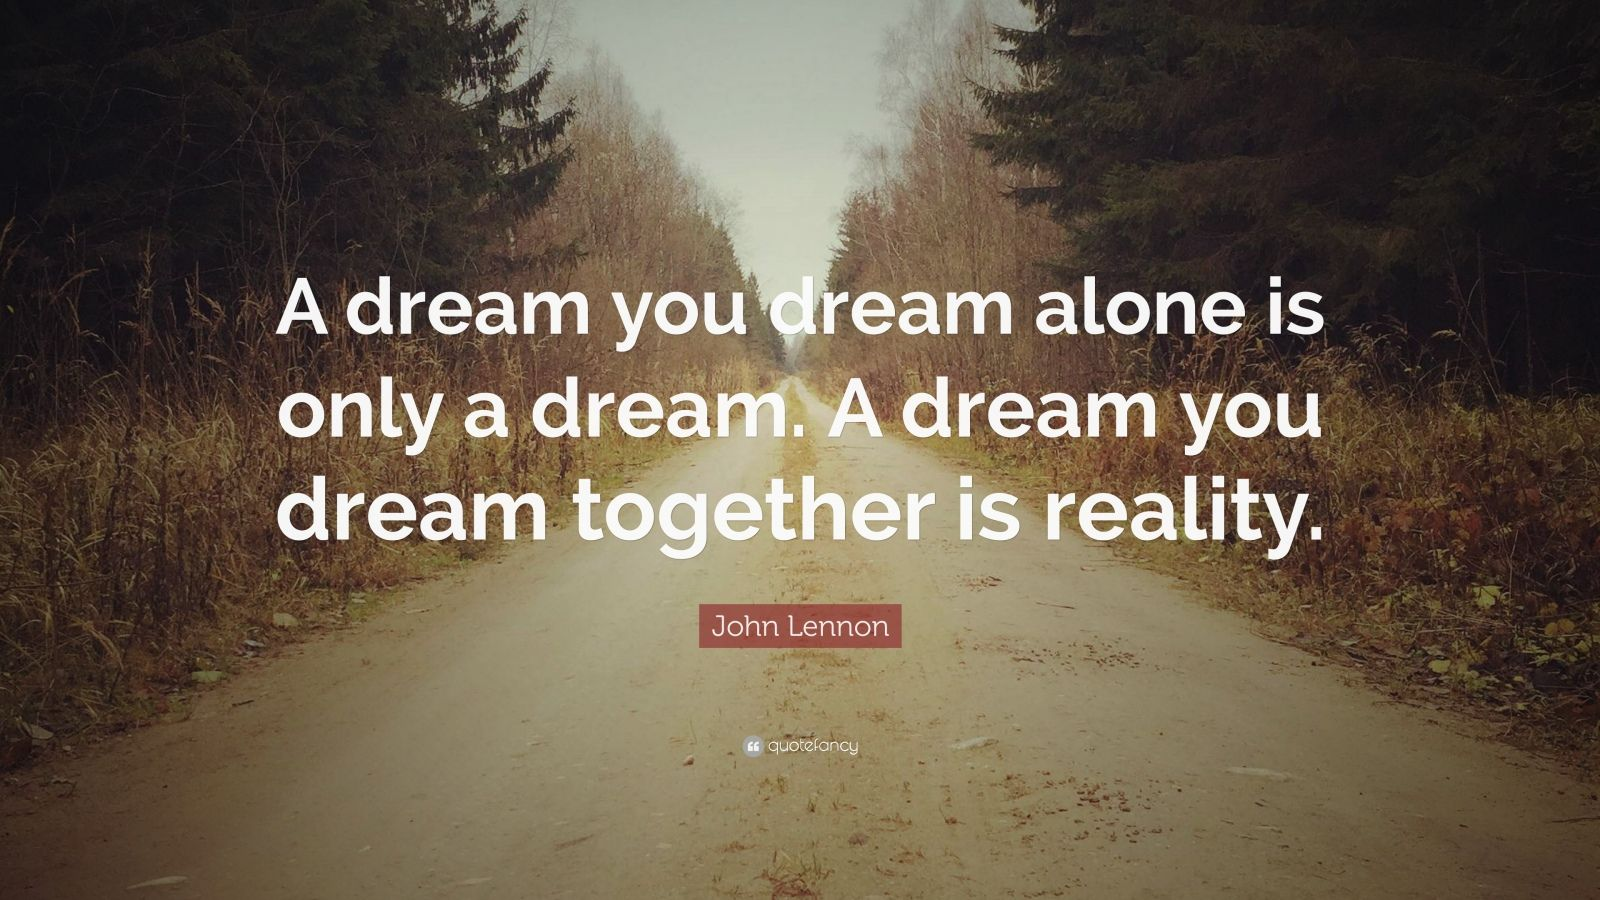 Mother Teresa Quotes Wallpapers John Lennon Quote A Dream You Dream Alone Is Only A